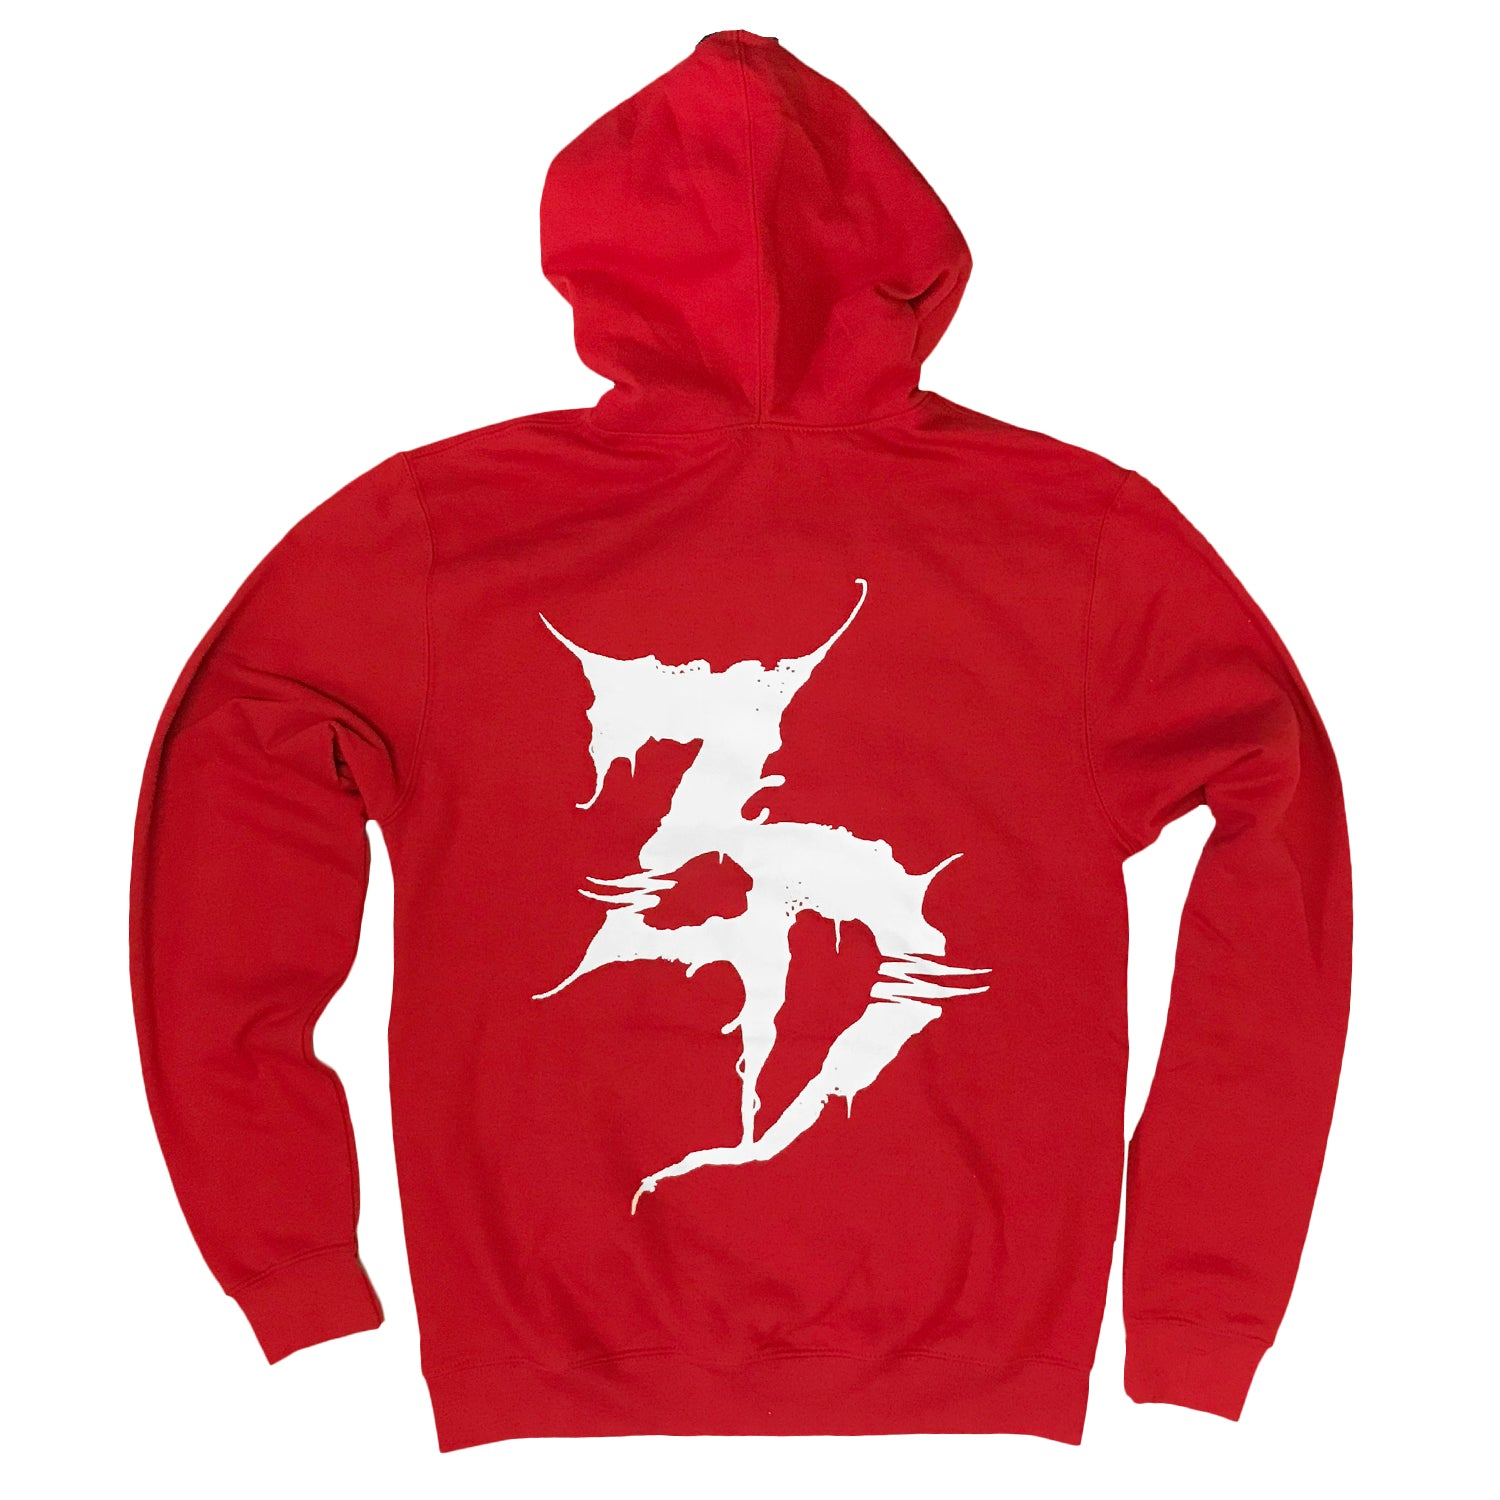 ZD - Havoc- Pullover Hoodie - Red